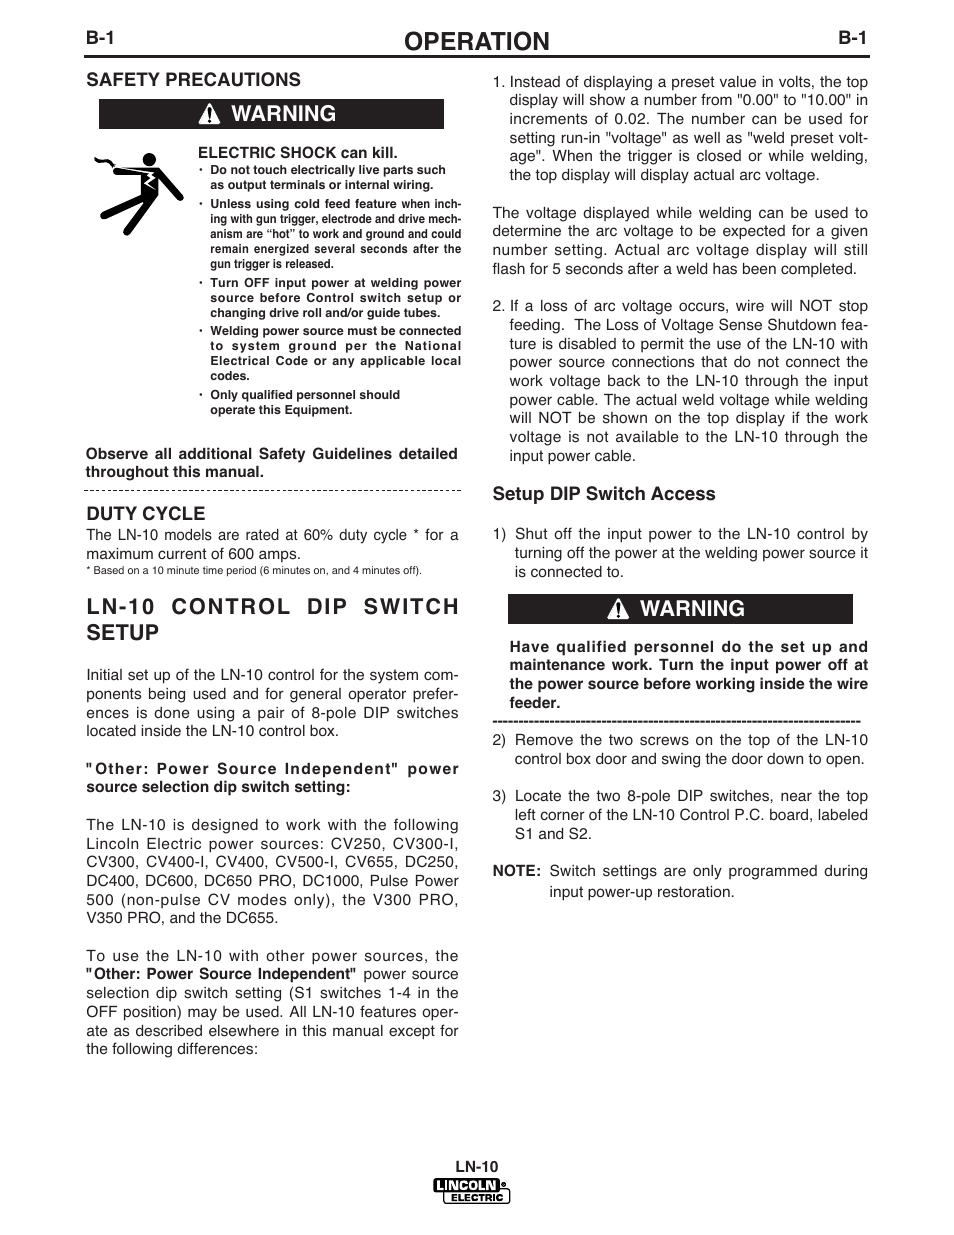 Operation, Ln-10 control dip switch setup, Warning | Lincoln